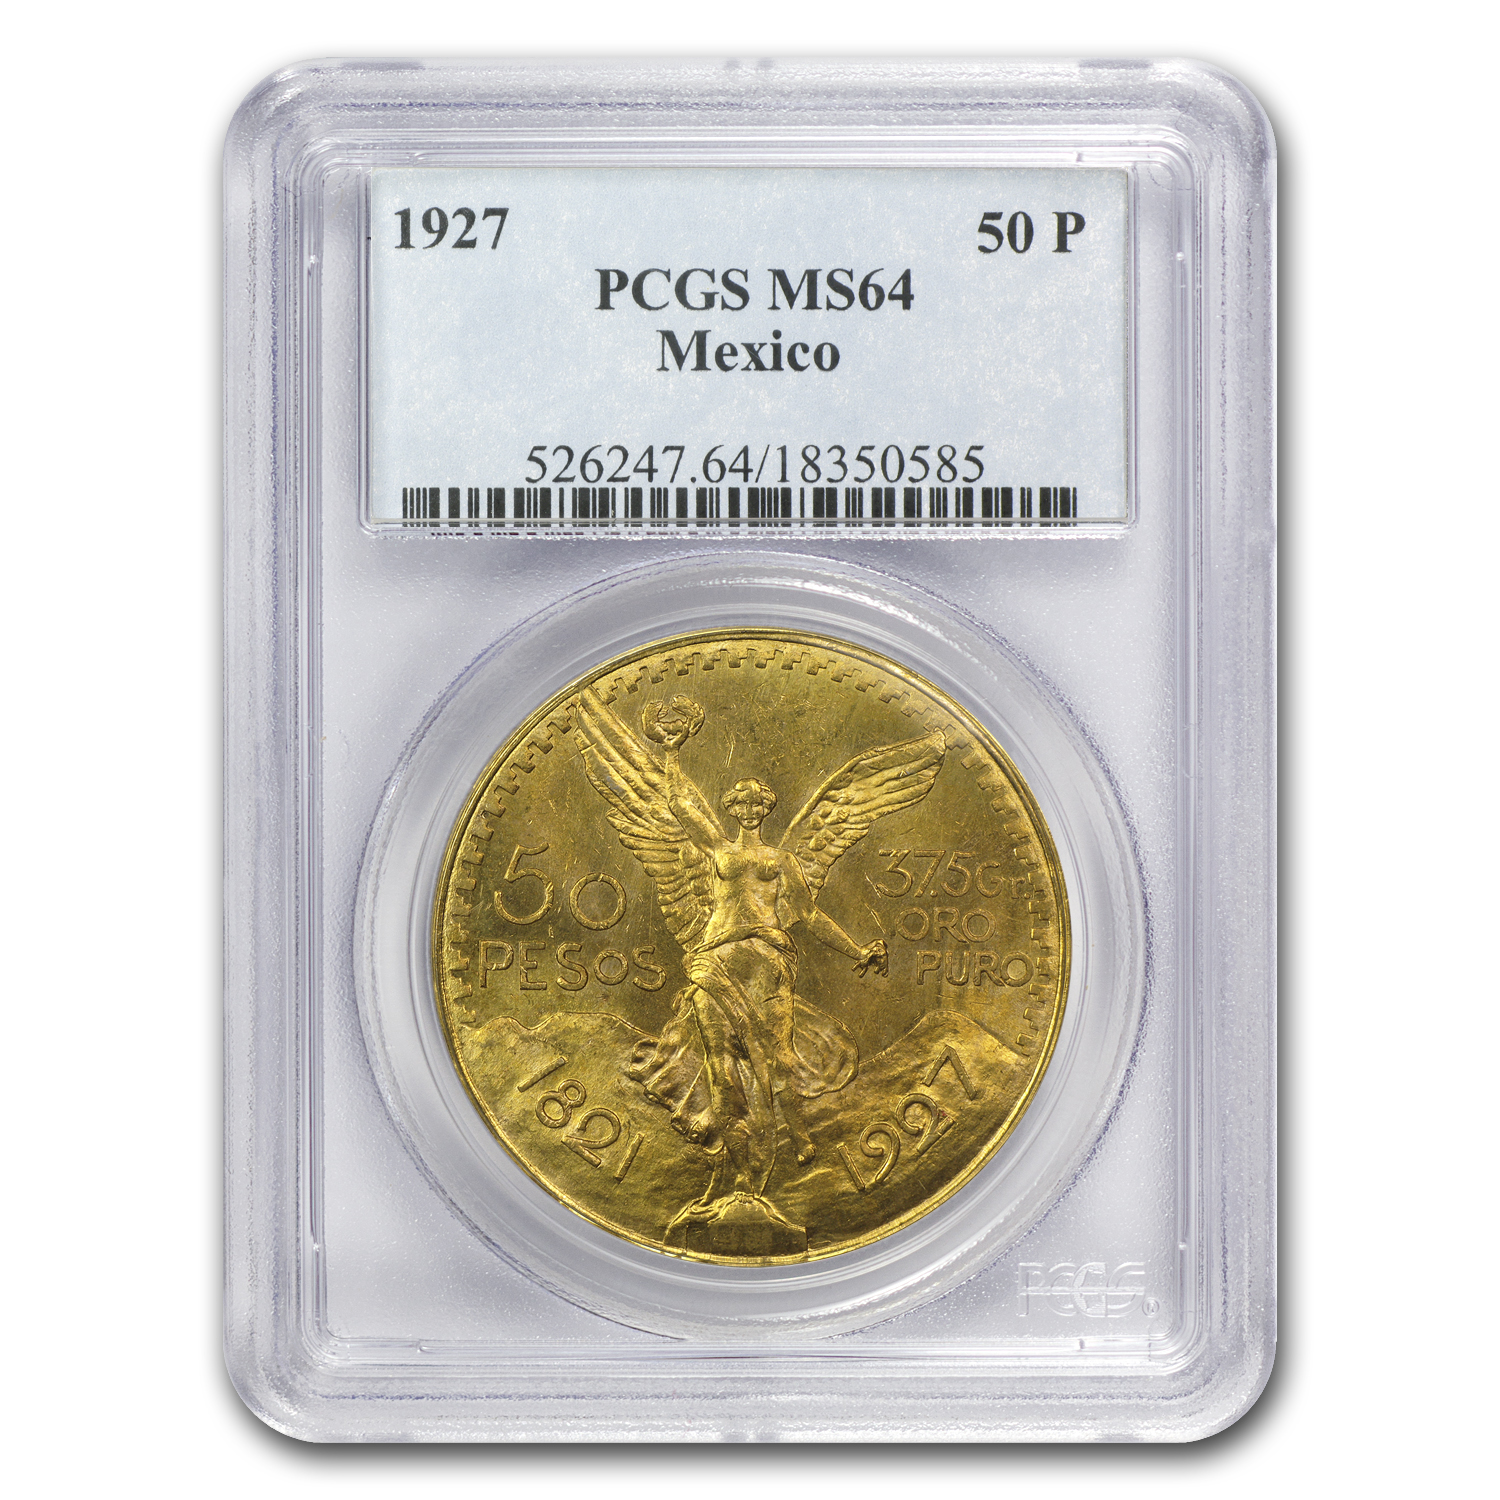 Mexico 1927 50 Pesos Gold MS-64 PCGS